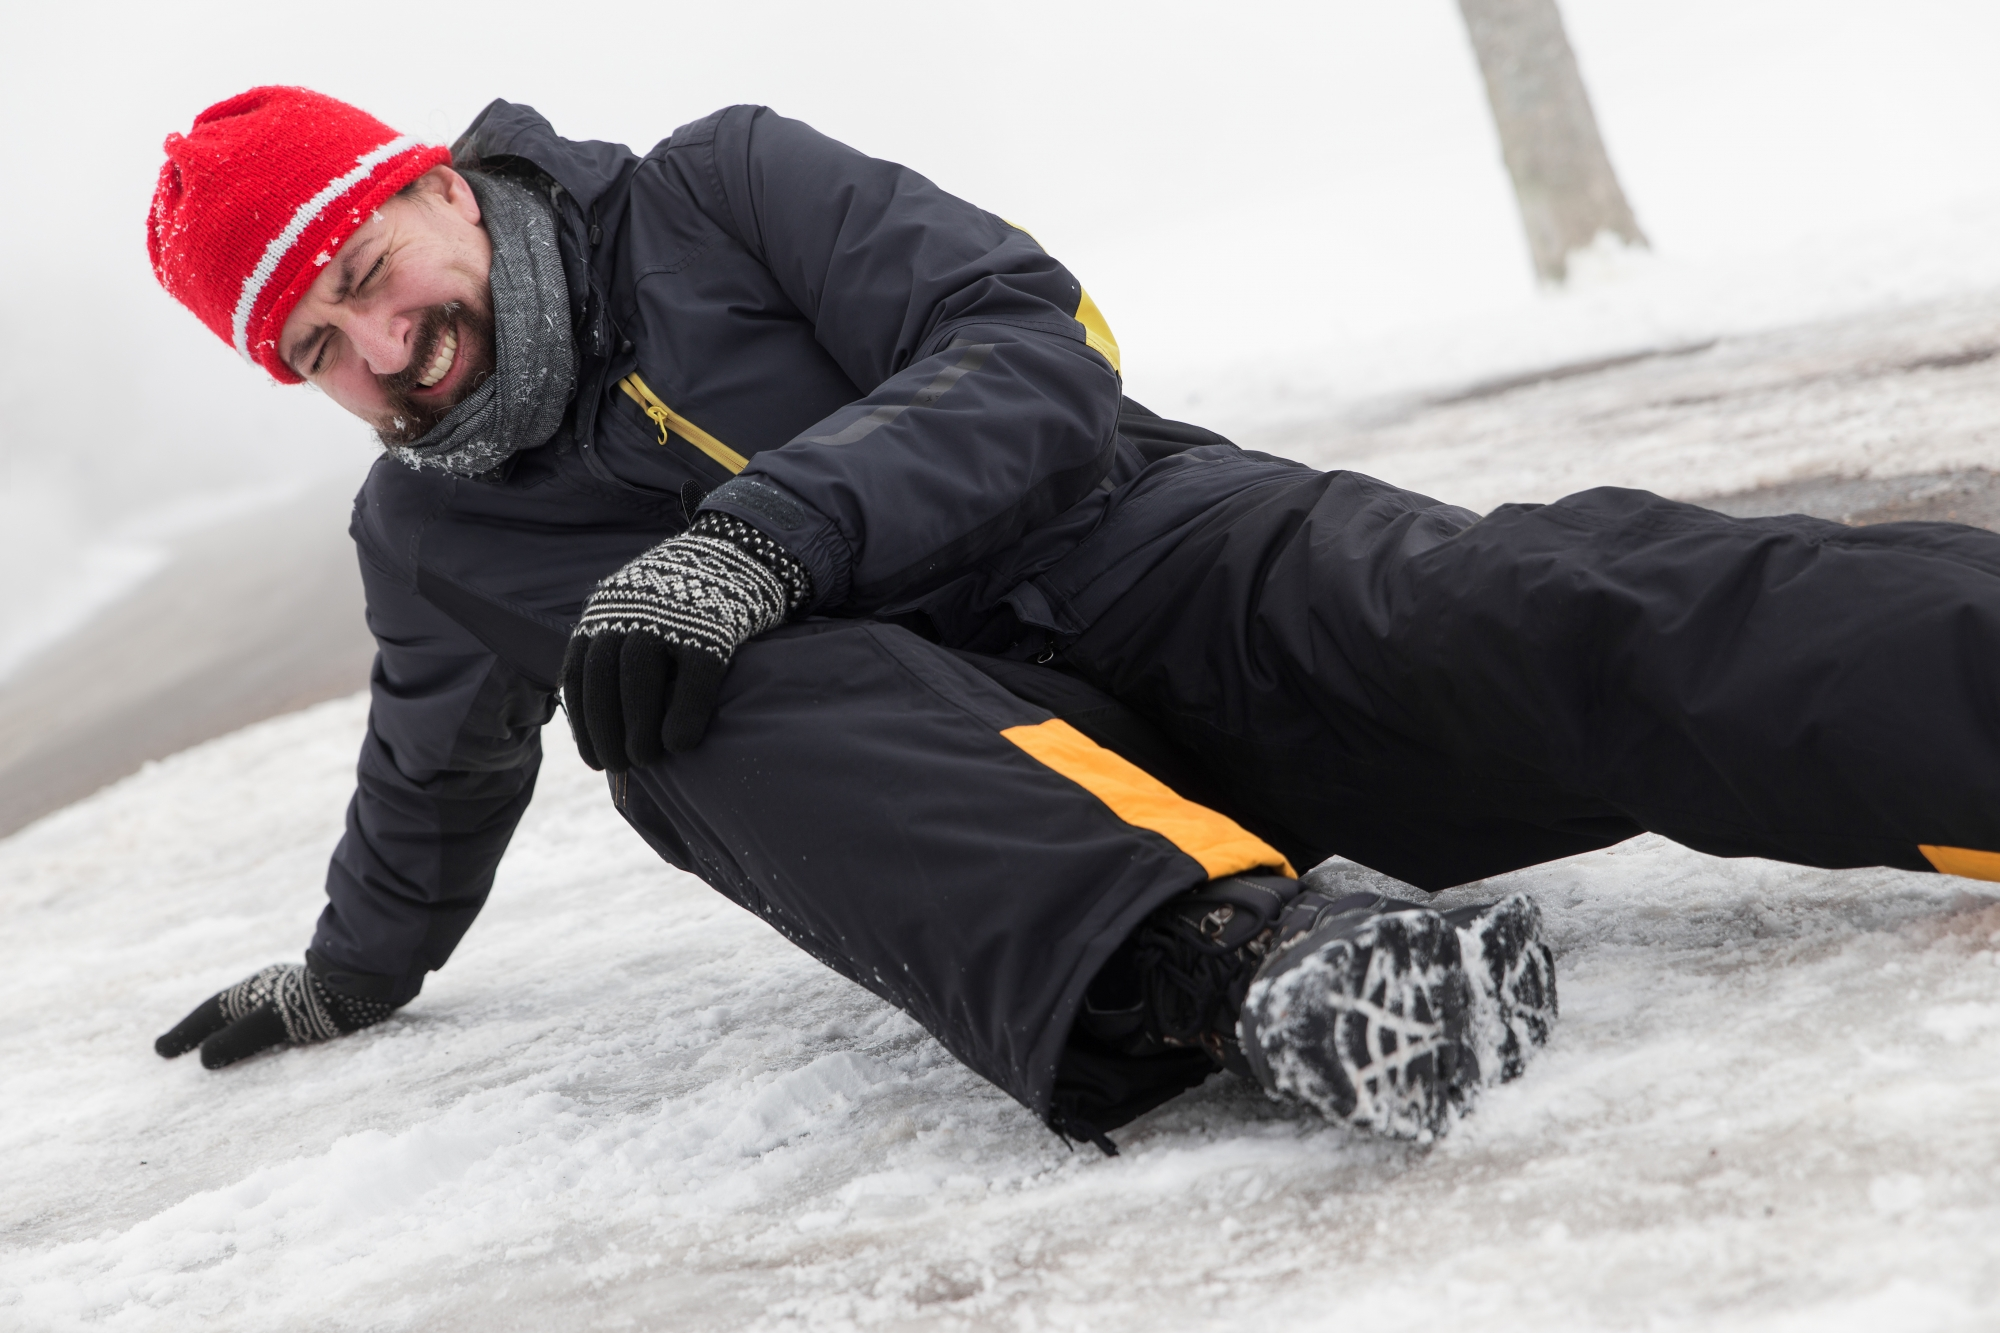 Slip and Fall Accident Attorney - Snowy, Icy Walks NYC